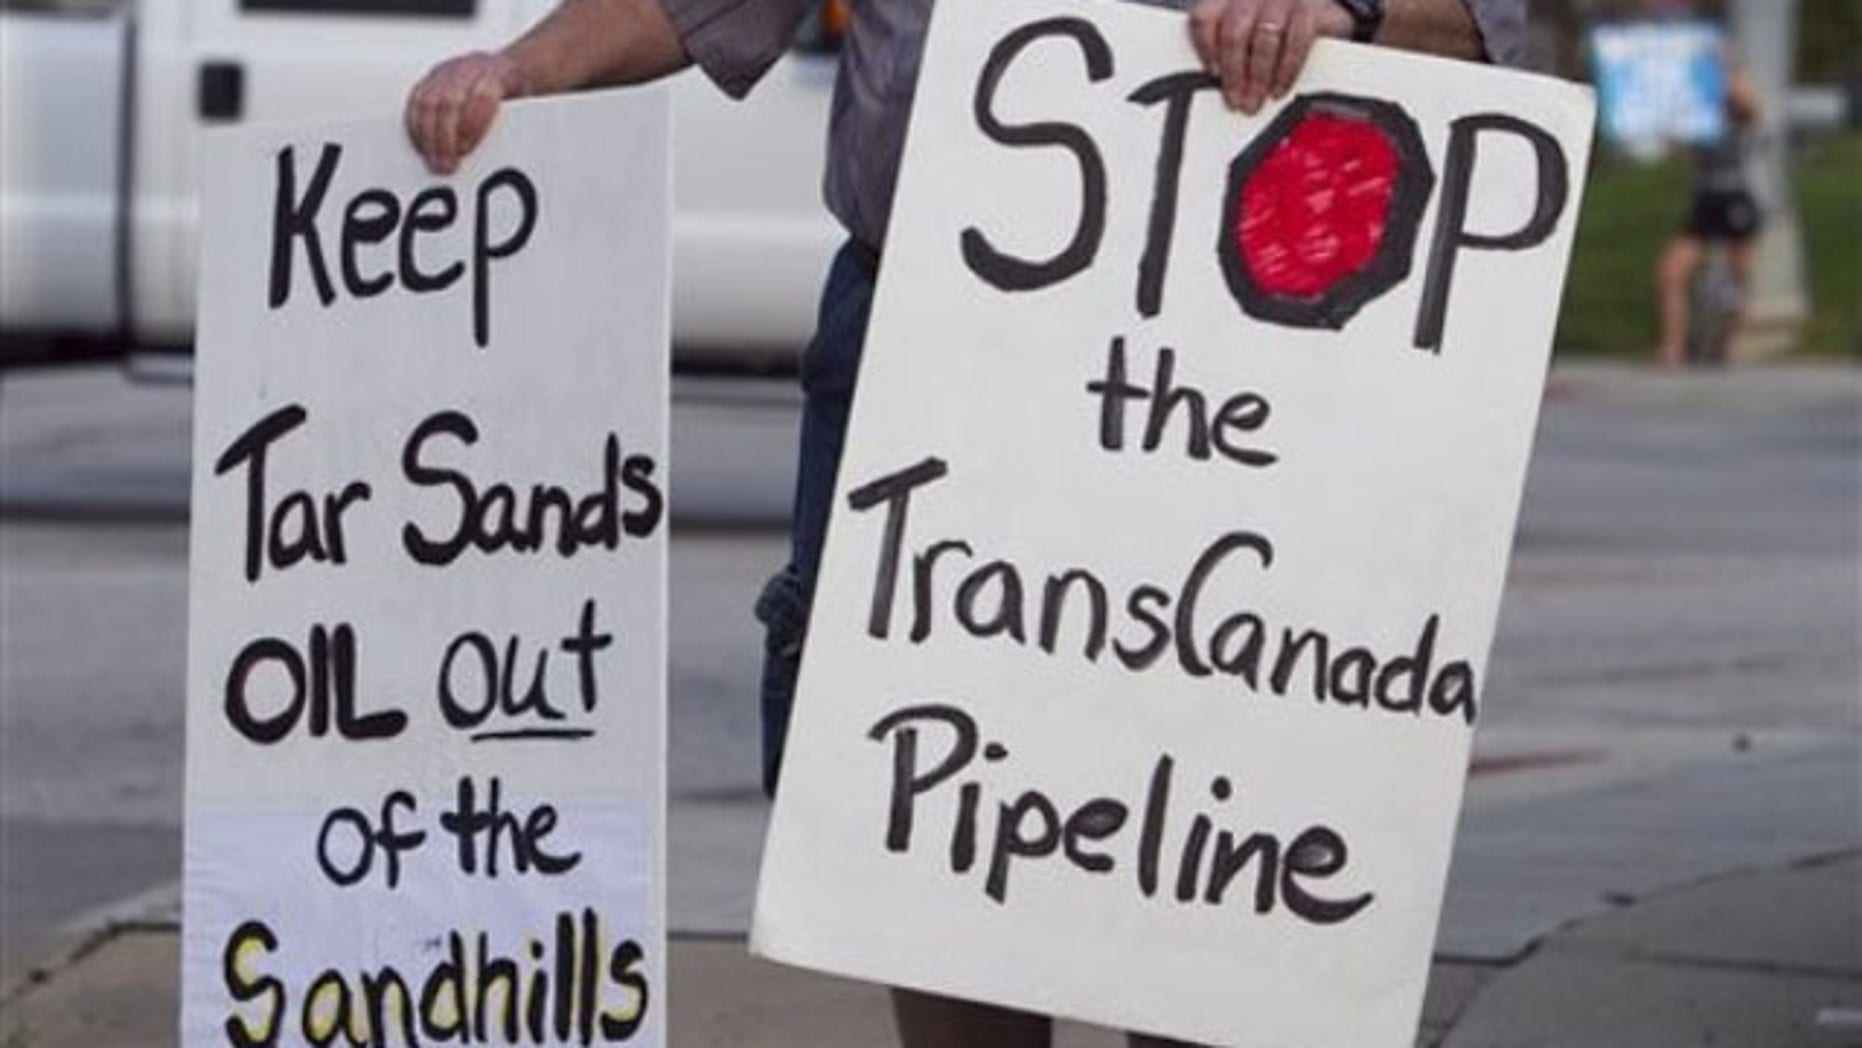 File: Sept. 21, 2010: An unidentified protester opposed to the Keystone XL pipeline carries signs, in Omaha, Neb.